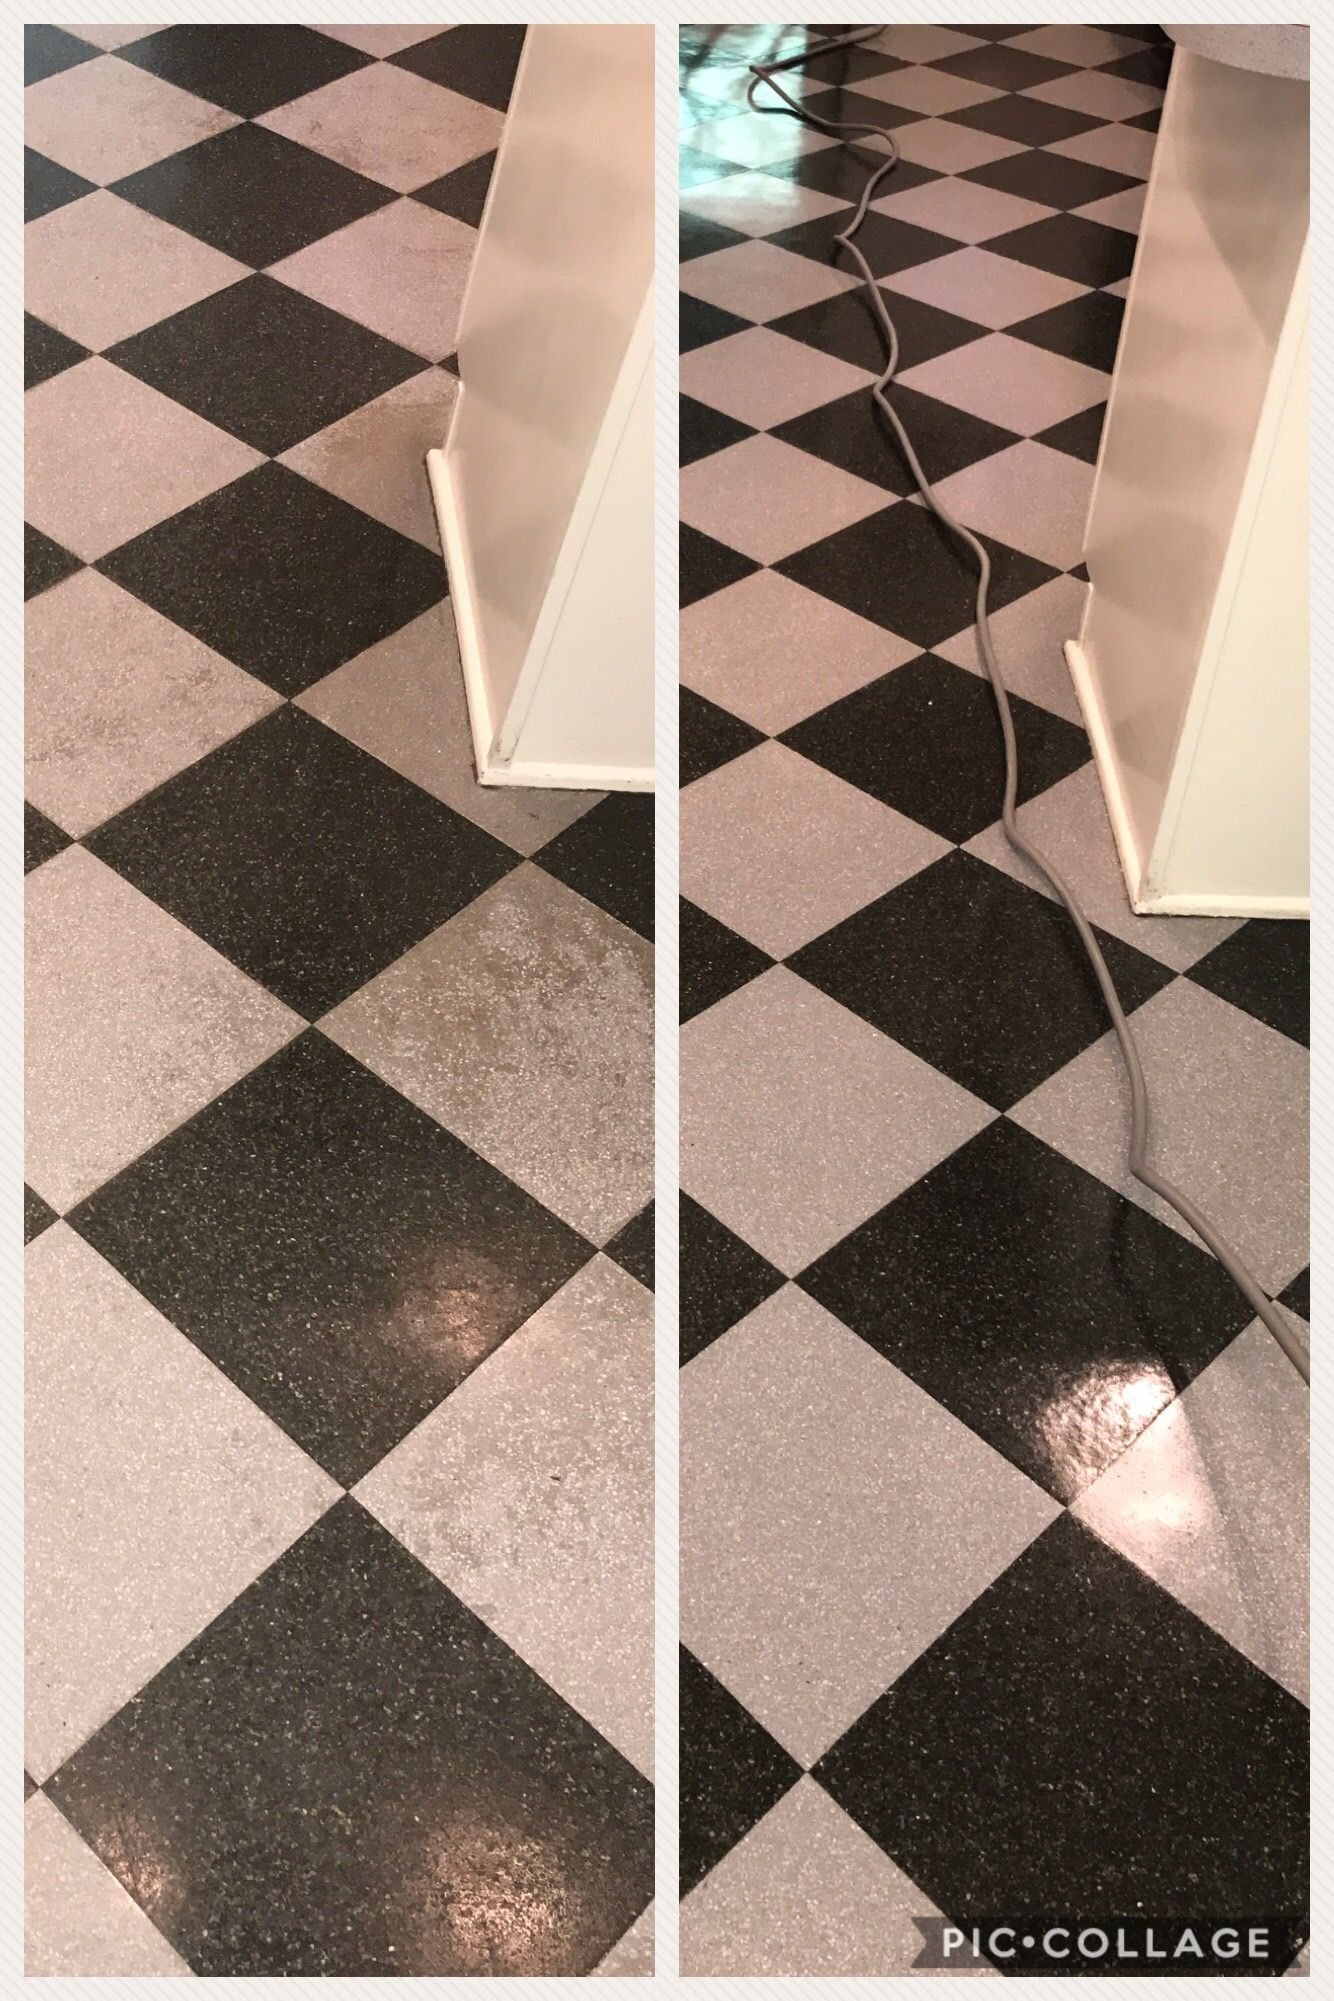 Pin By Tigerdry On Tile Floor Strip Wax Pinterest Tile